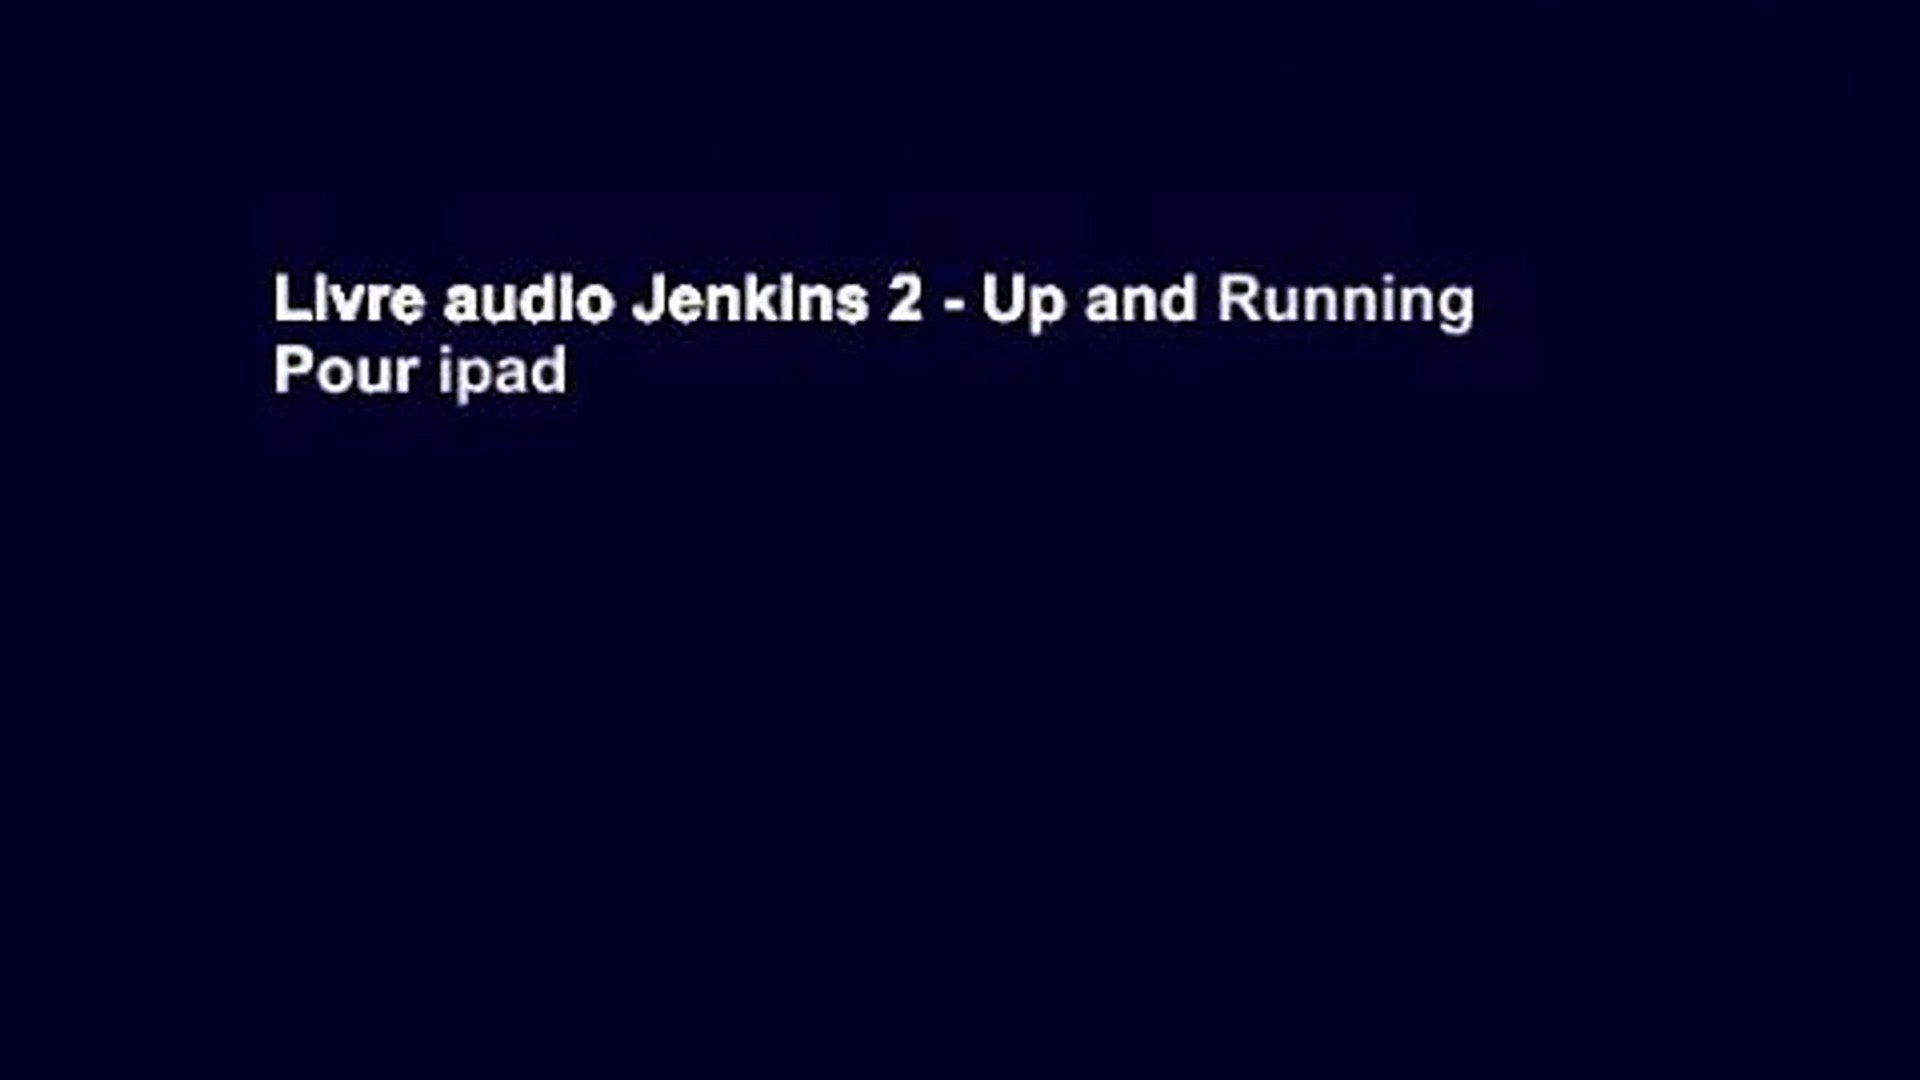 Livre Audio Jenkins 2 Up And Running Pour Ipad